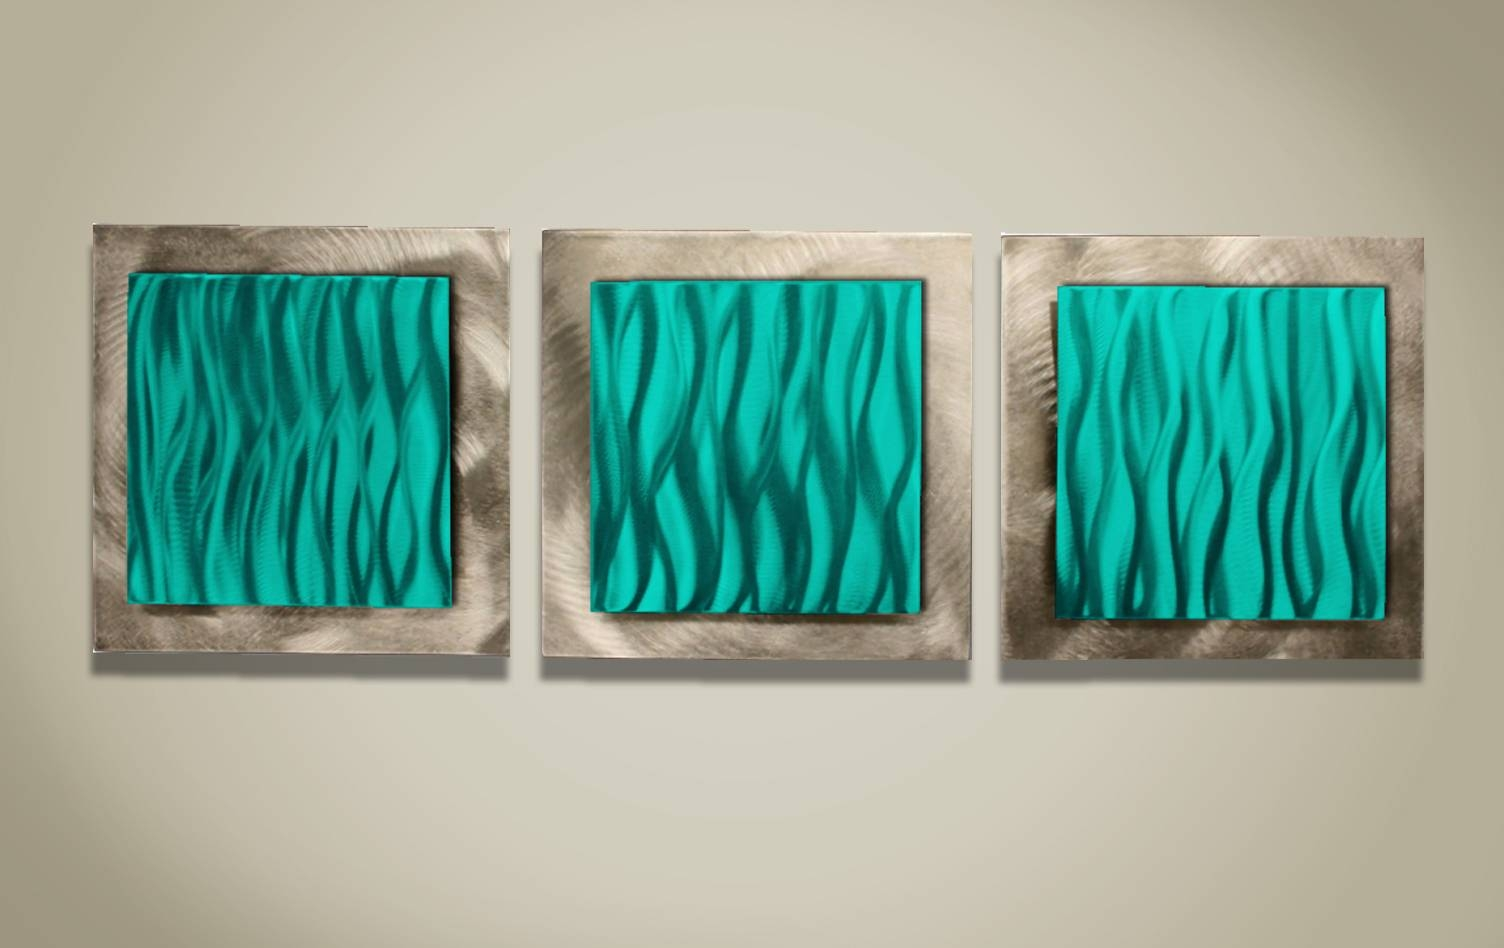 Teal Kitchen, Turquoise Metal Wall Art Decorative Metal Wall Art Inside Best And Newest Turquoise Metal Wall Art (View 2 of 20)